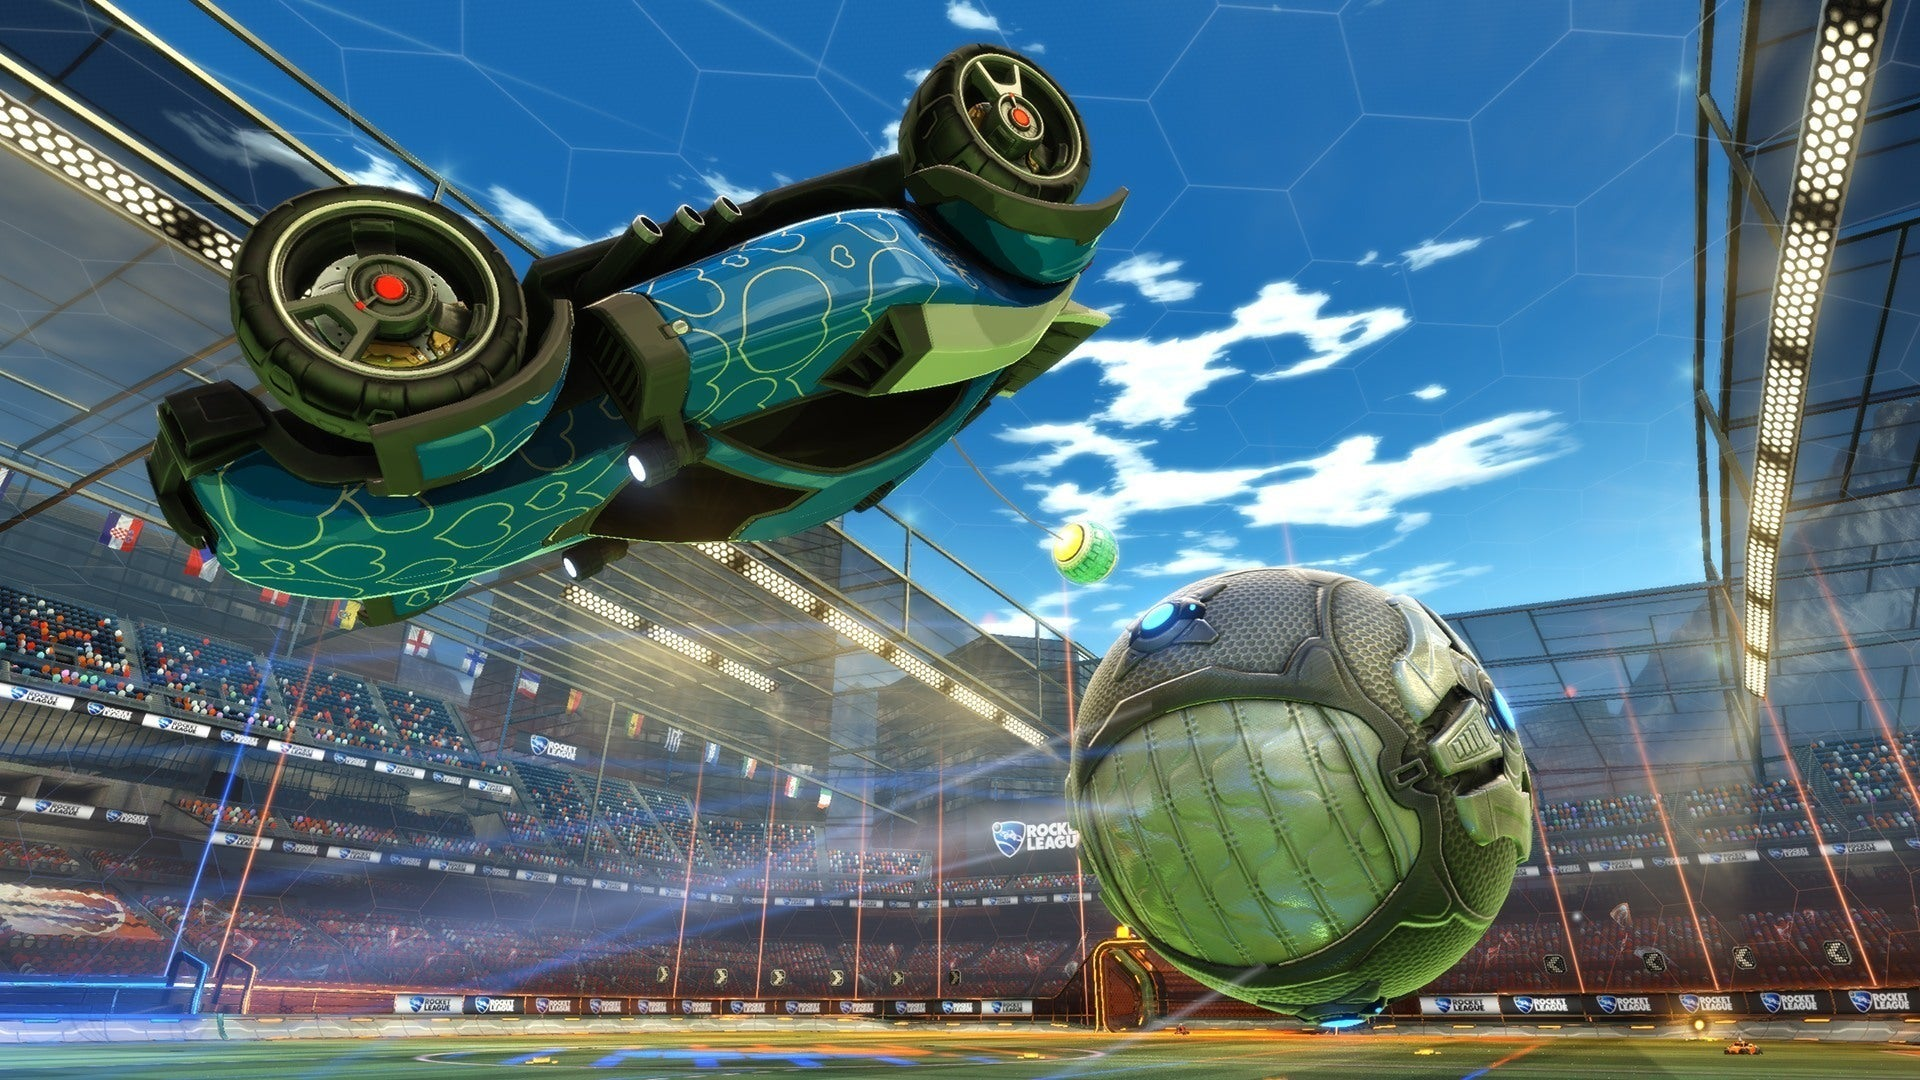 Cool Car Pc Wallpapers Rocket League Screenshots Pictures Wallpapers Pc Ign